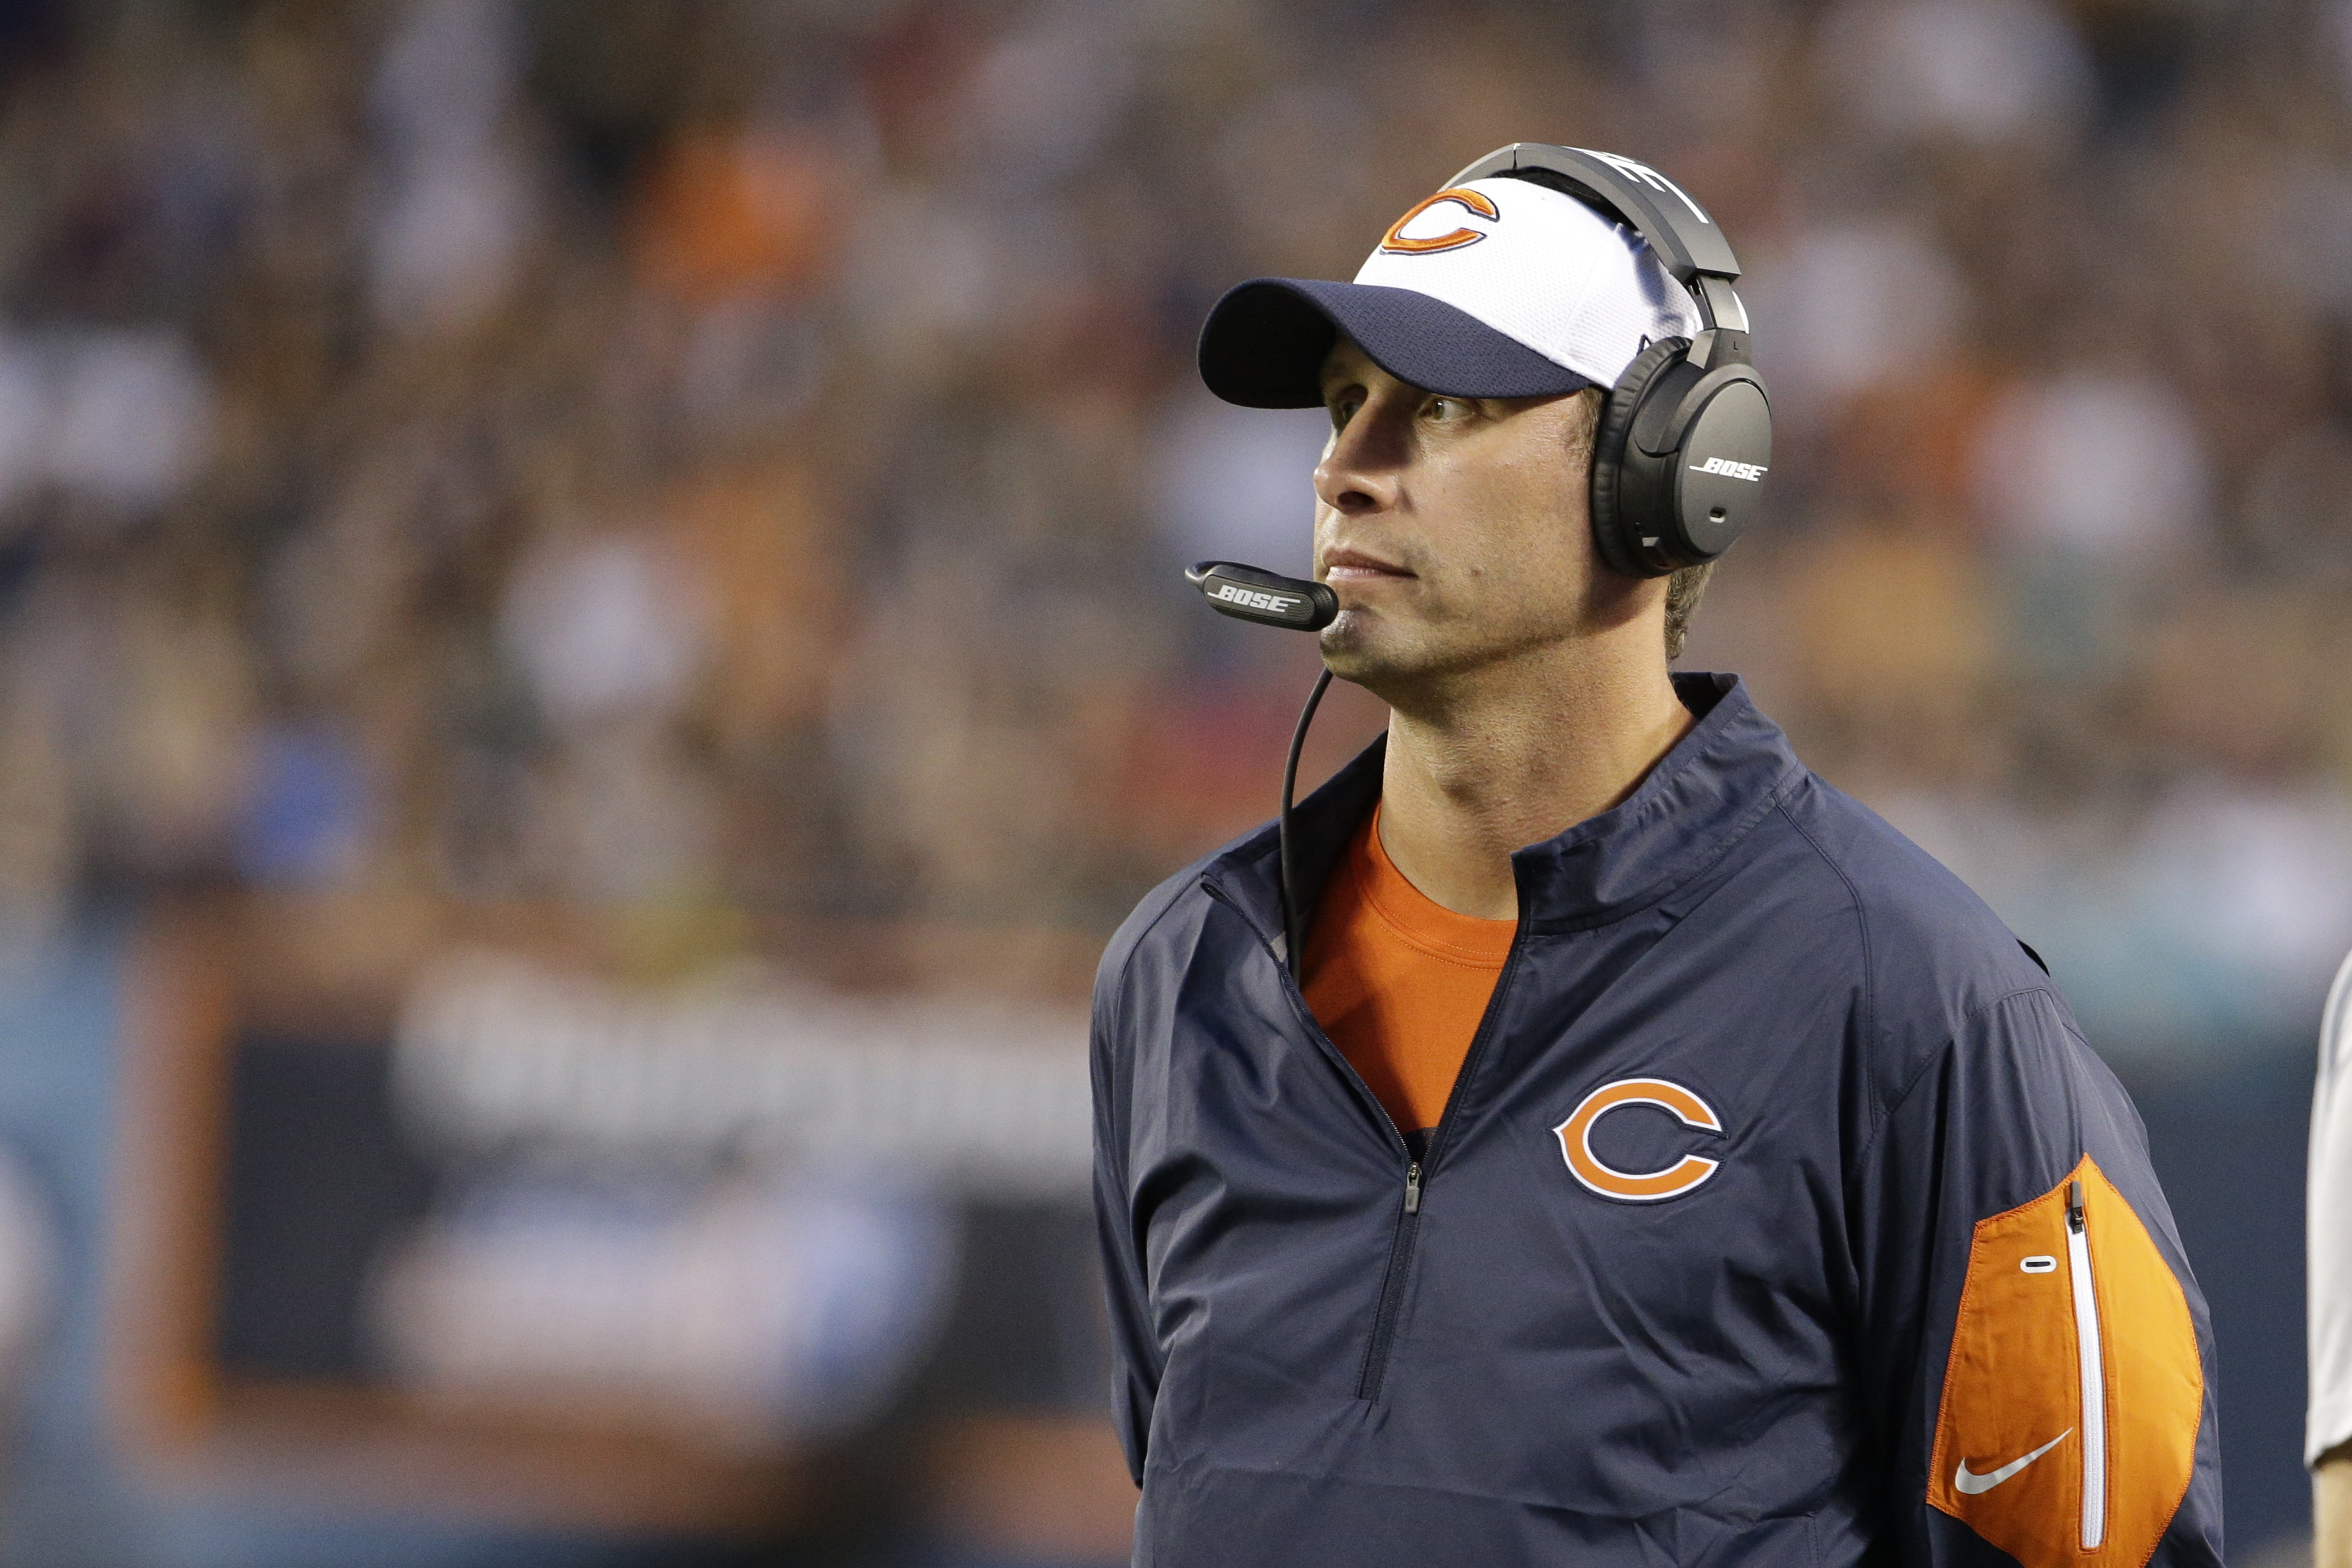 FILE - In this Aug. 13, 2015, file photo, Chicago Bears offensive coordinator Adam Gase during the first half of an NFL preseason football game against the Miami Dolphins in Chicago. Gase and defensive coordinator Vic Fangio could be candidates for head c